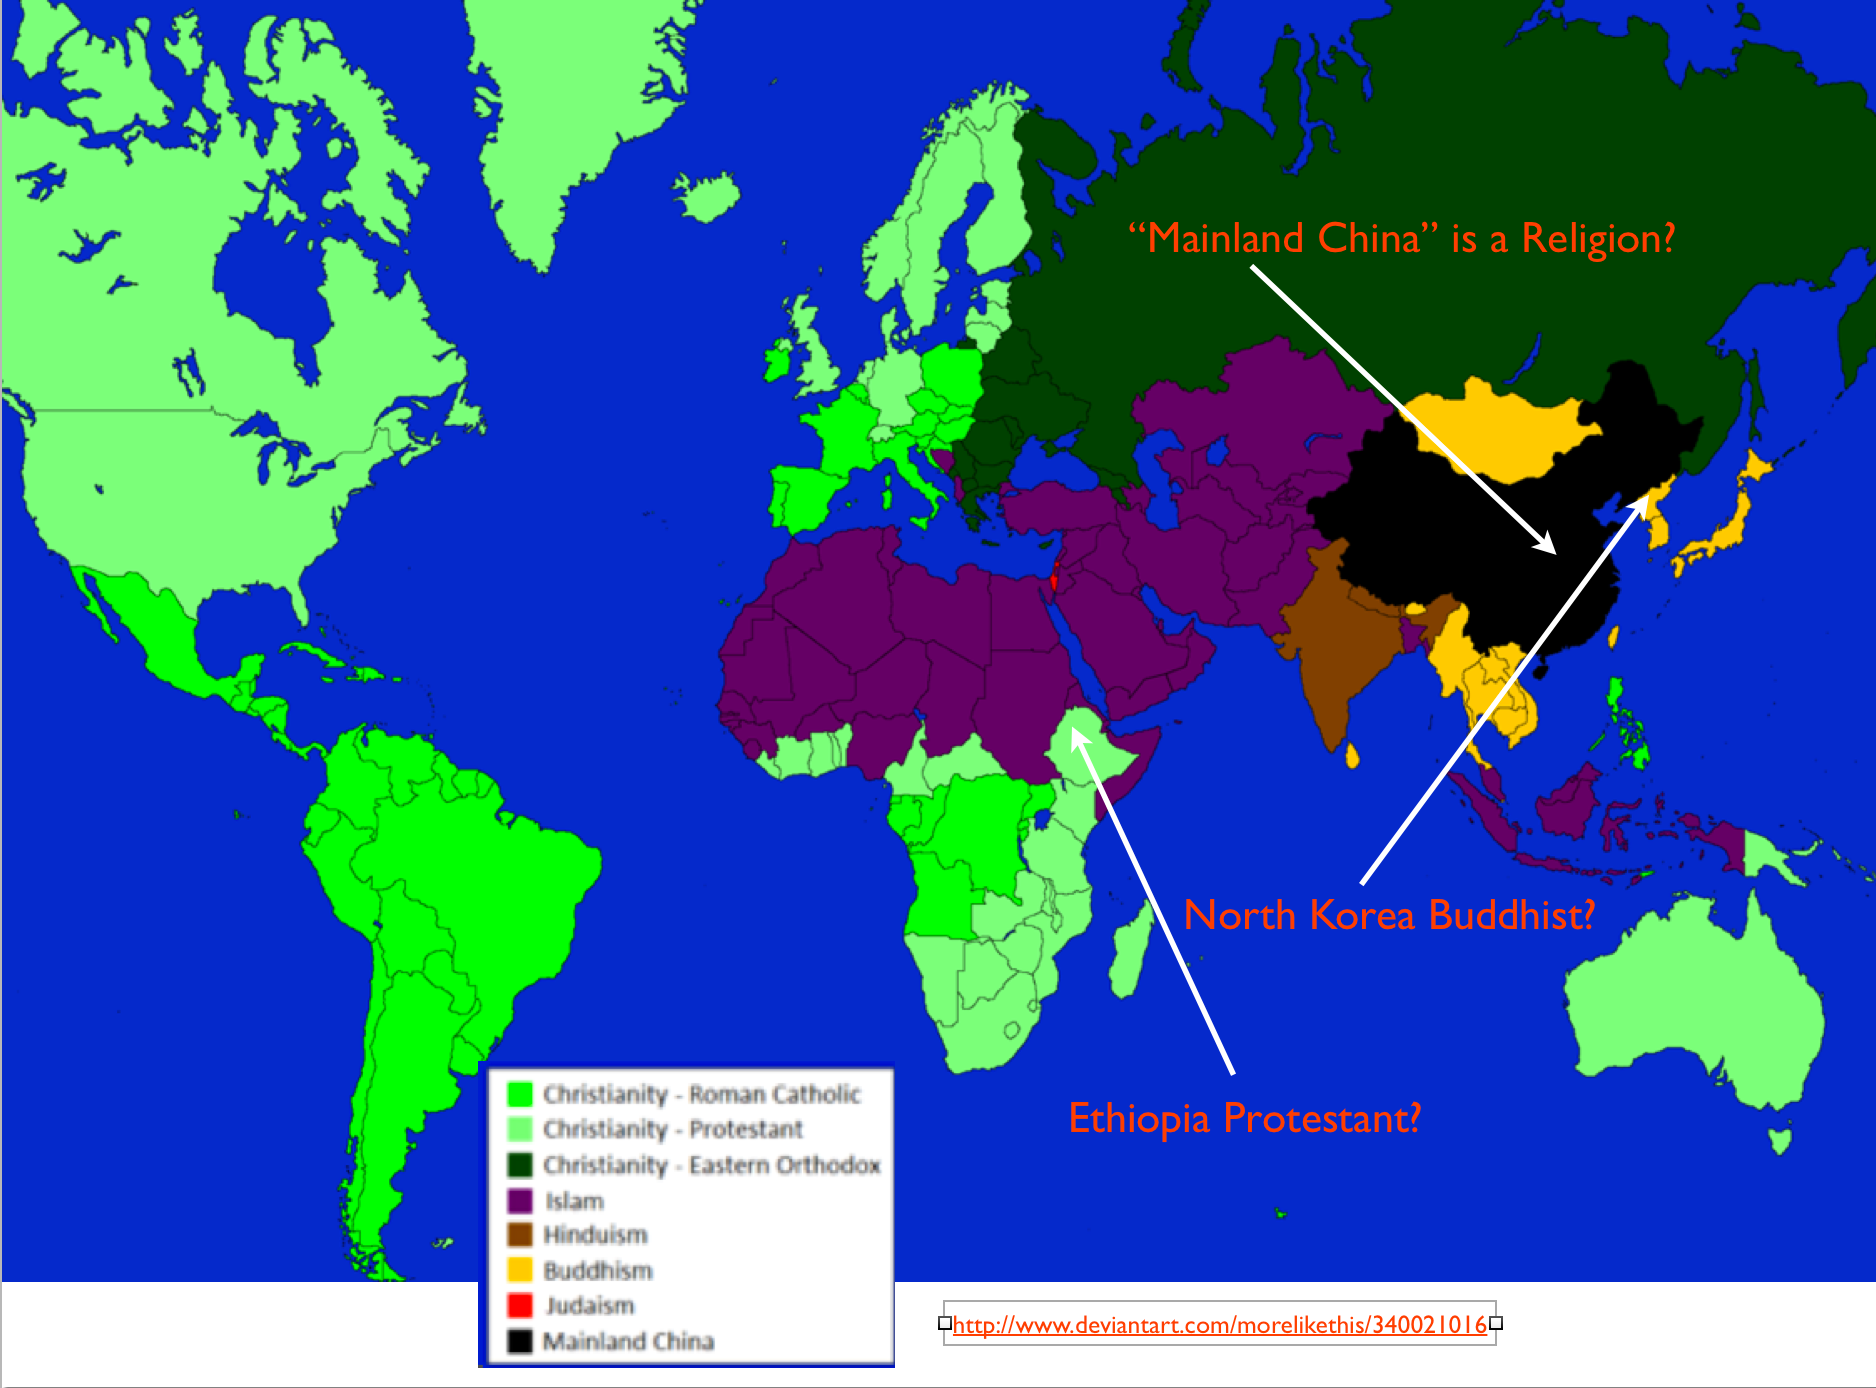 Wikipedia The Difficulties Of Mapping World Religions And A Most - Religion map of world 2014